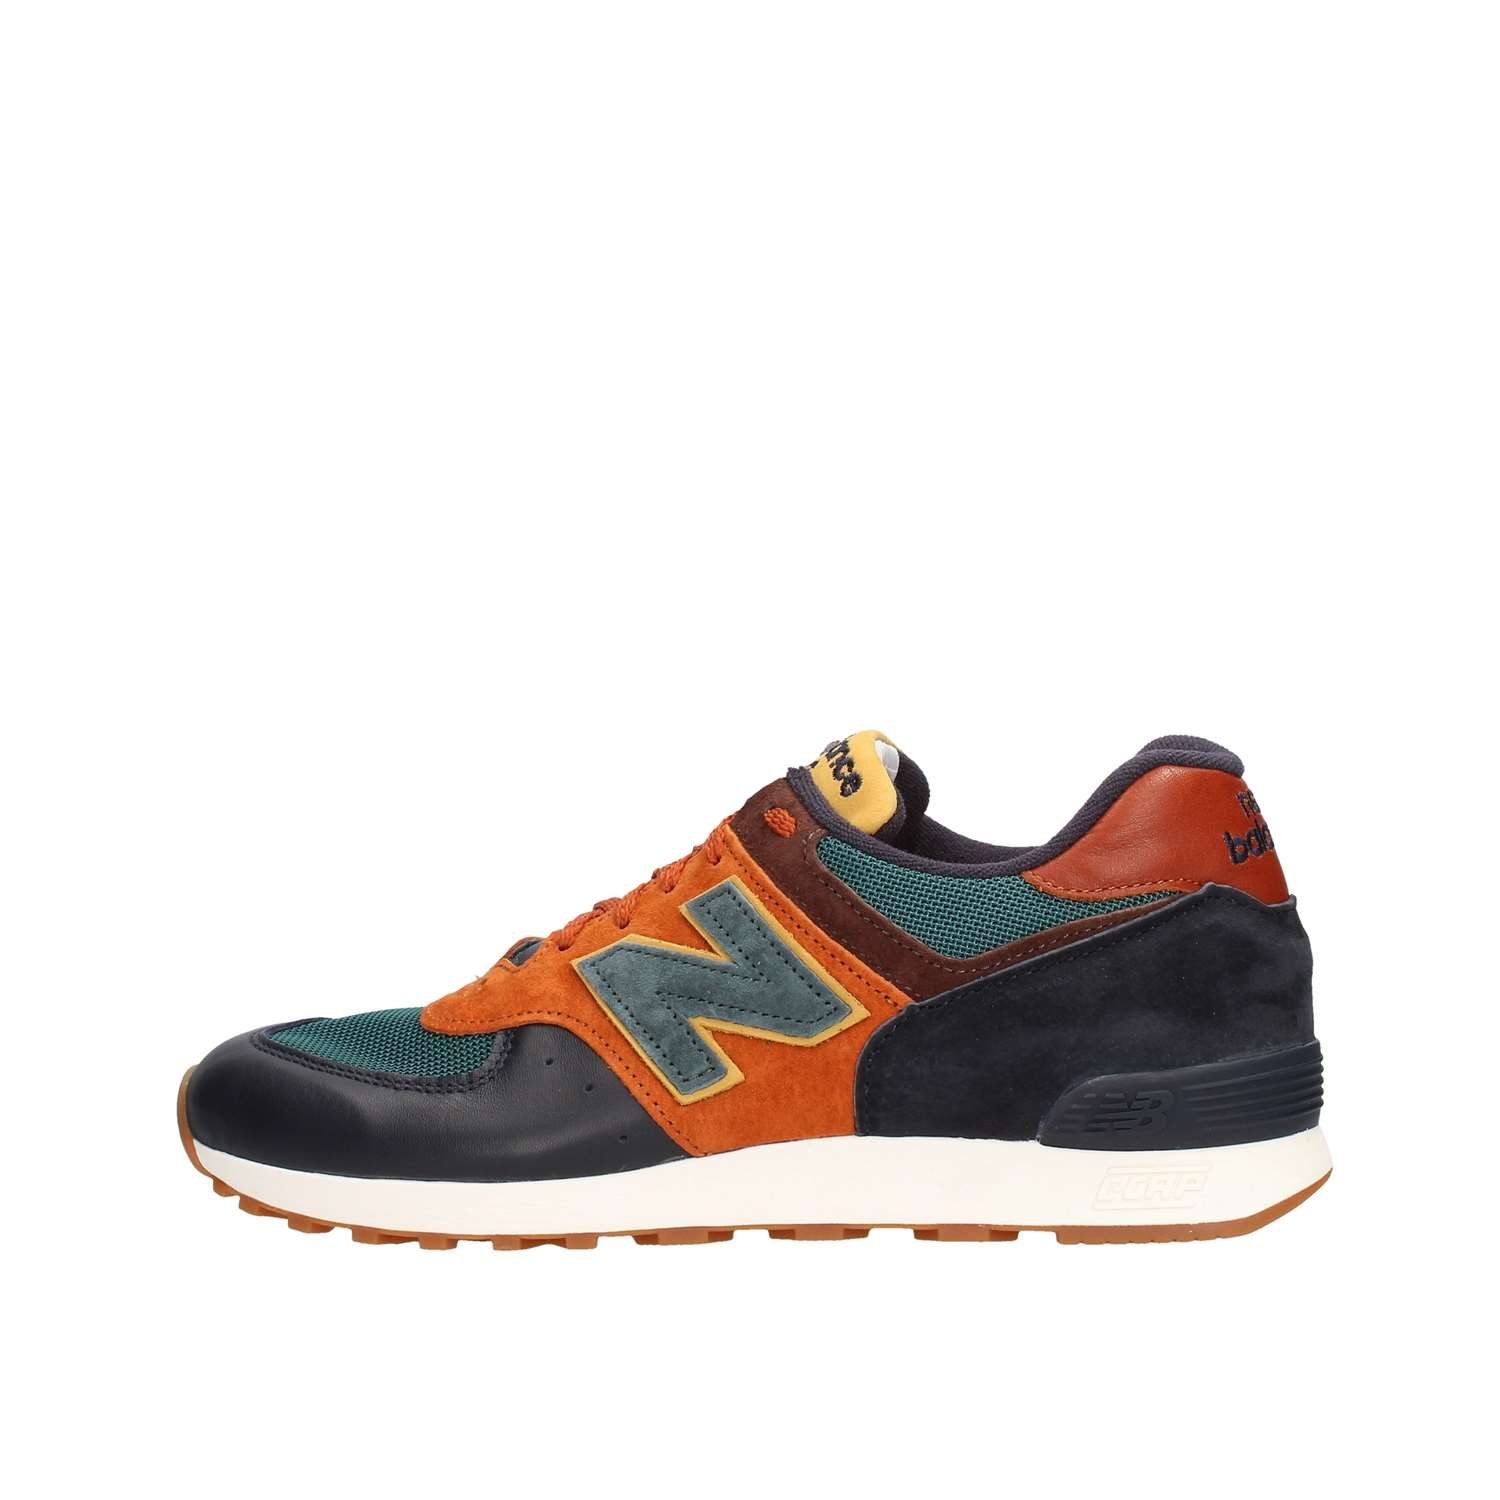 half off 58a37 678b1 New Balance M576 Yard Pack, YP Multi Colors, 13: Amazon.co ...